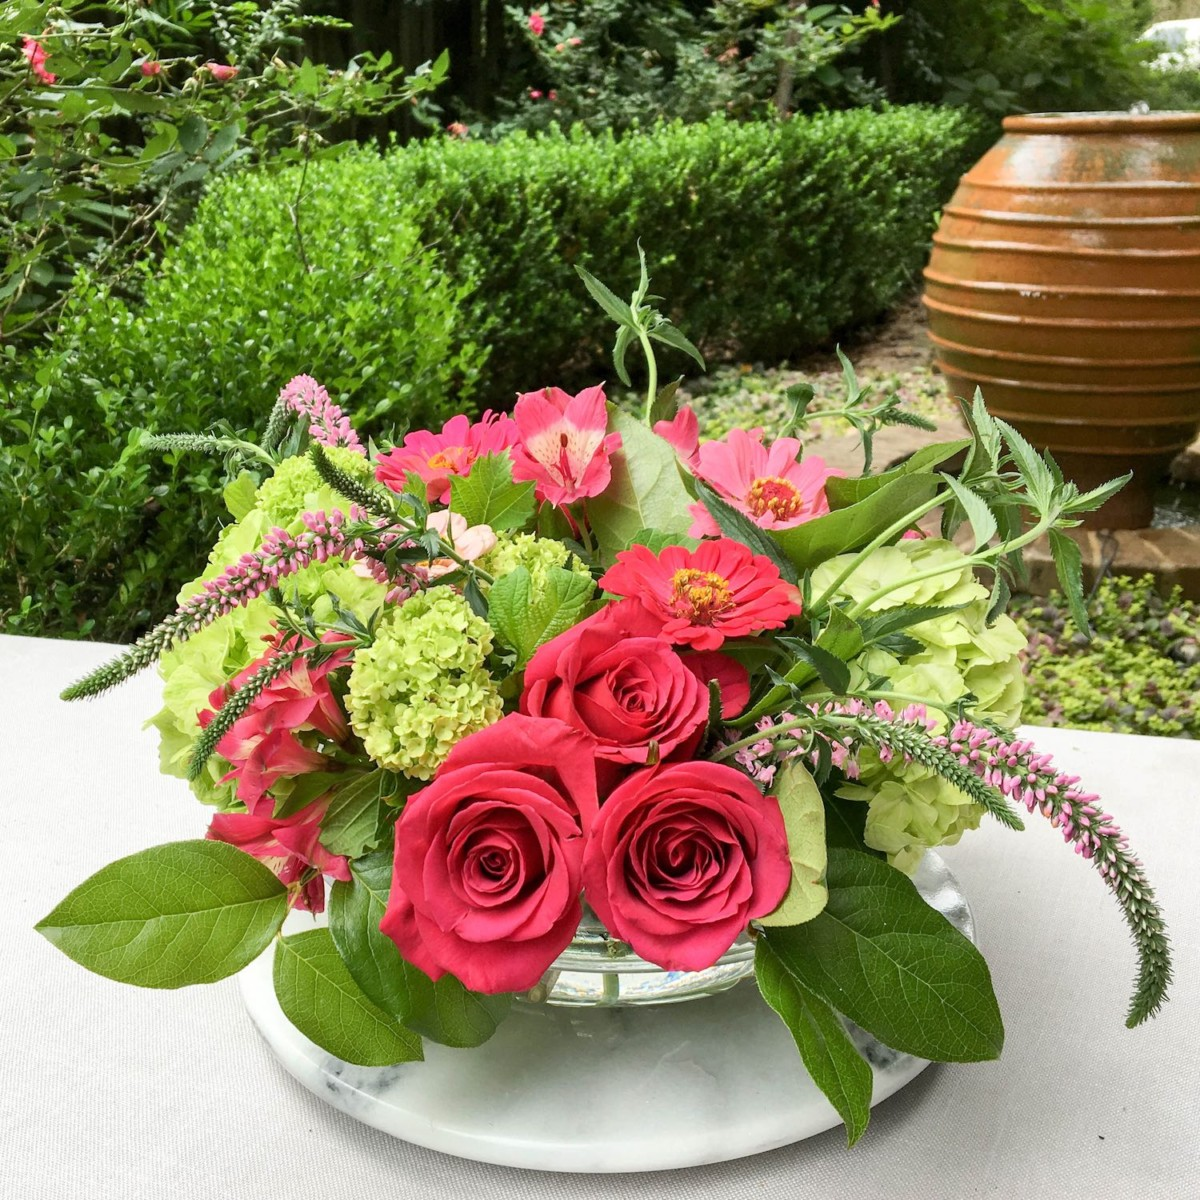 Pics Of Flower Arrangements summer flower arrangements - flower magazine | home & lifestyle